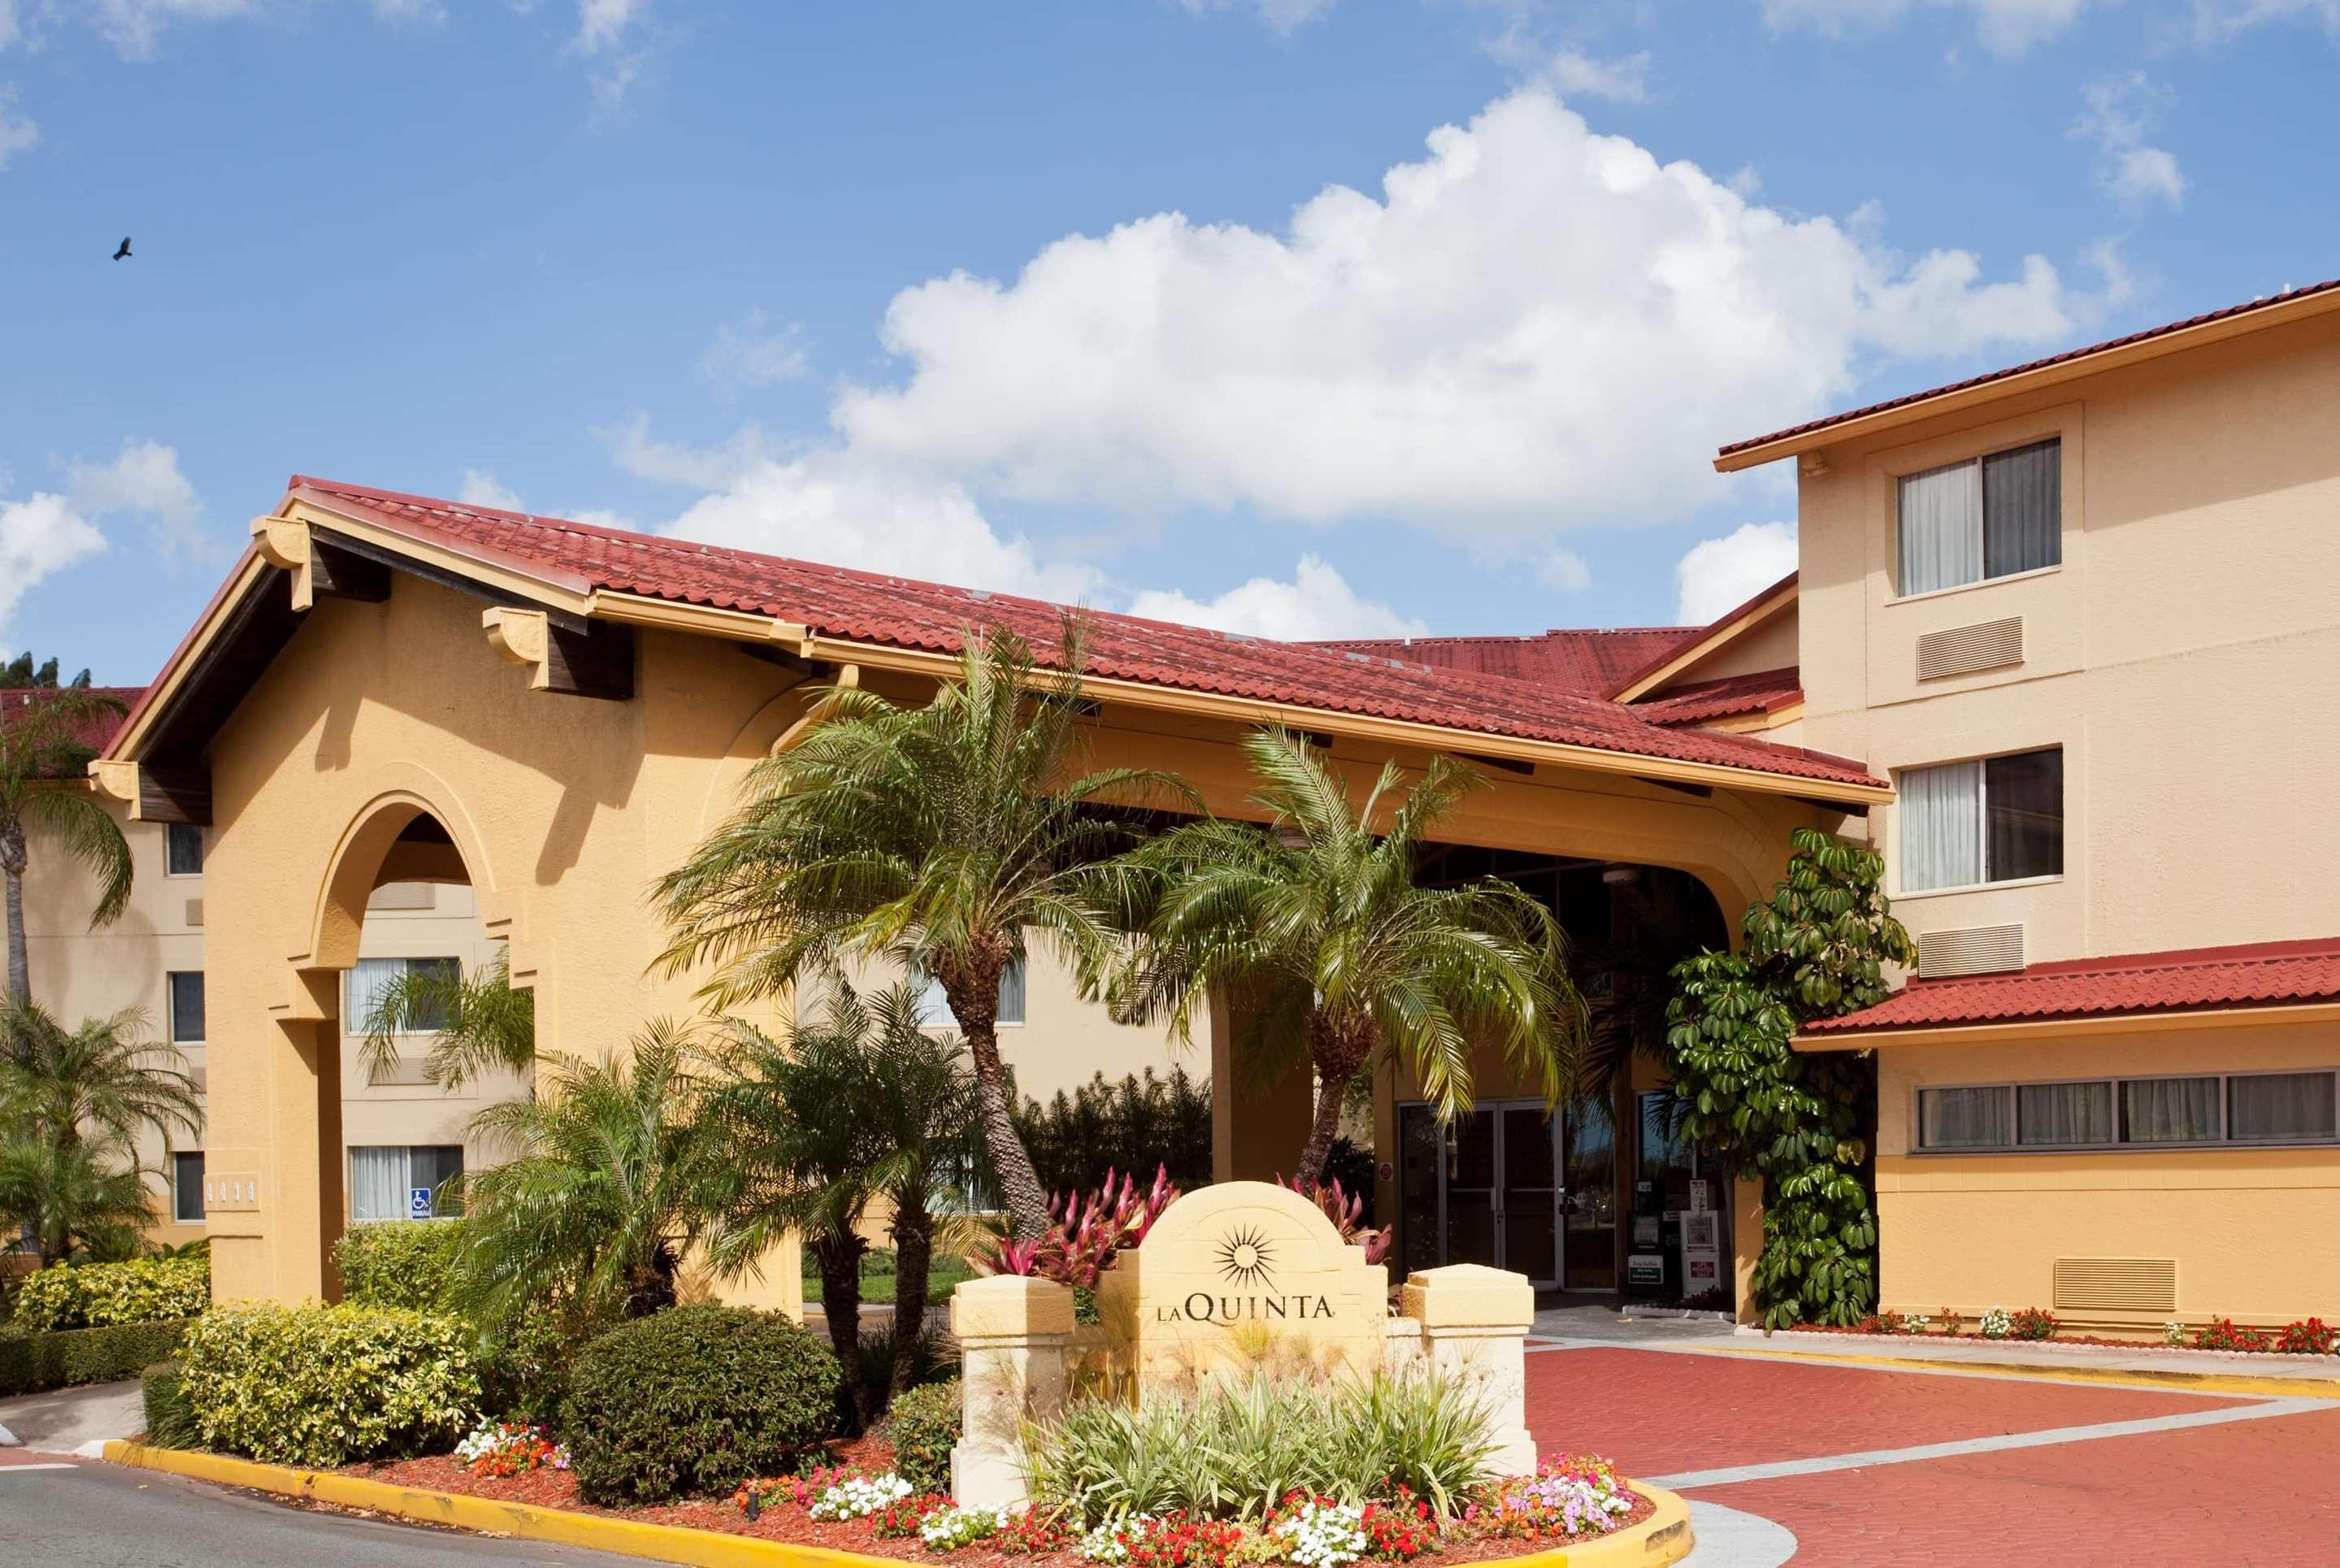 La Quinta Inn & Suites by Wyndham St. Pete-Clearwater Airpt